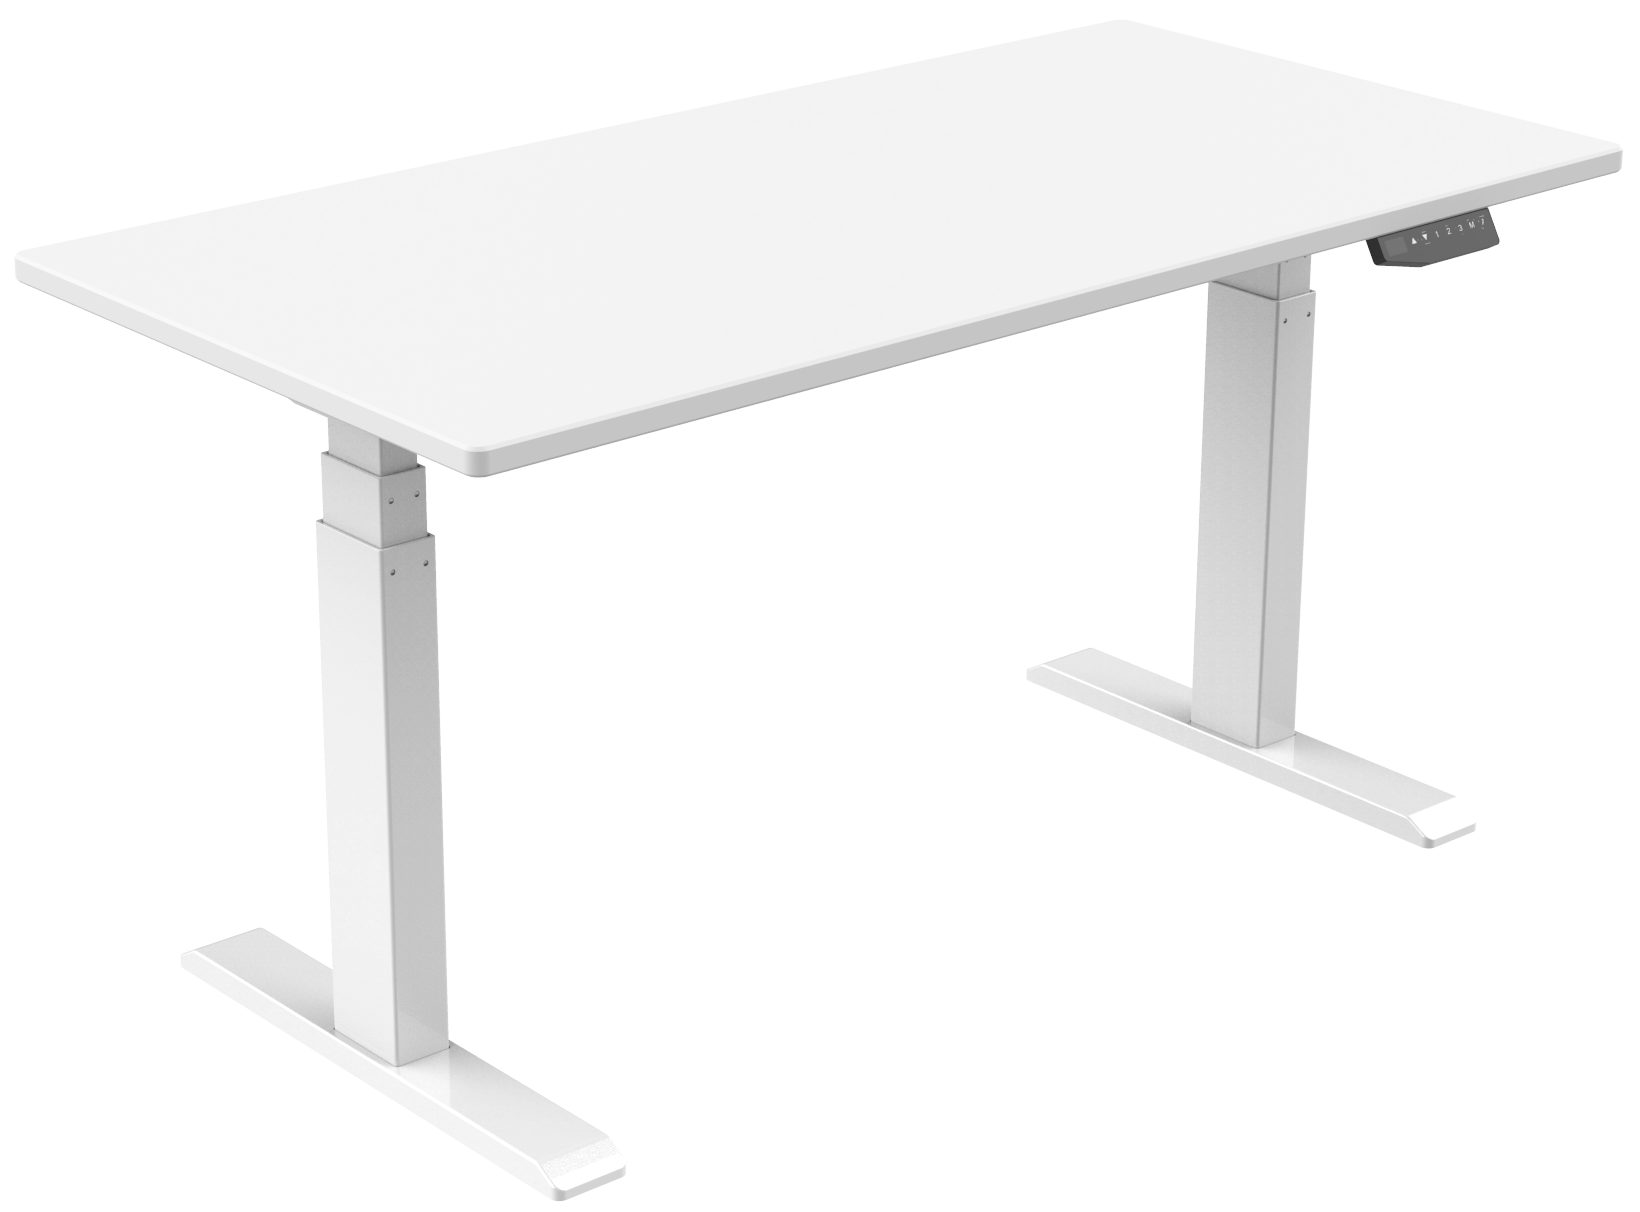 Vantage Stand Desk White Frame with White Desk Top